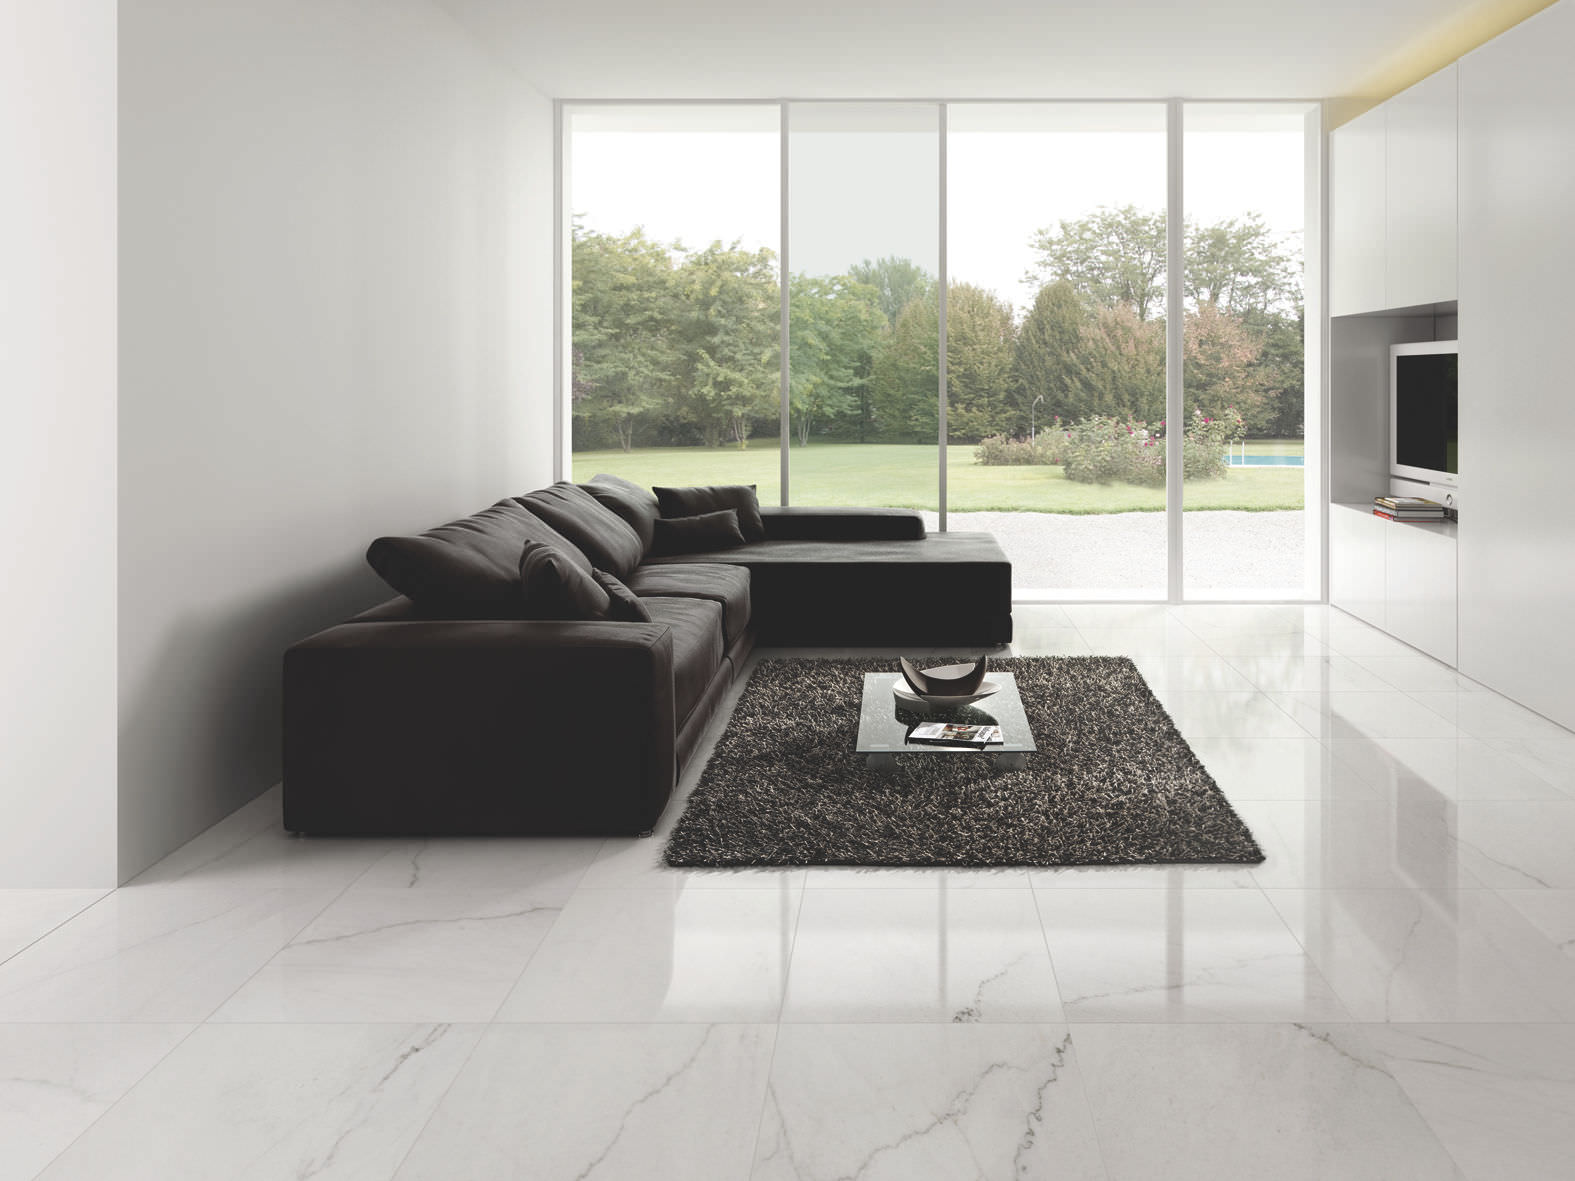 marbles grout lines in porcelain tiles flooring luxurious black rug comfy black sofa a flat tv - Porcelain Floor Tiles For Living Room